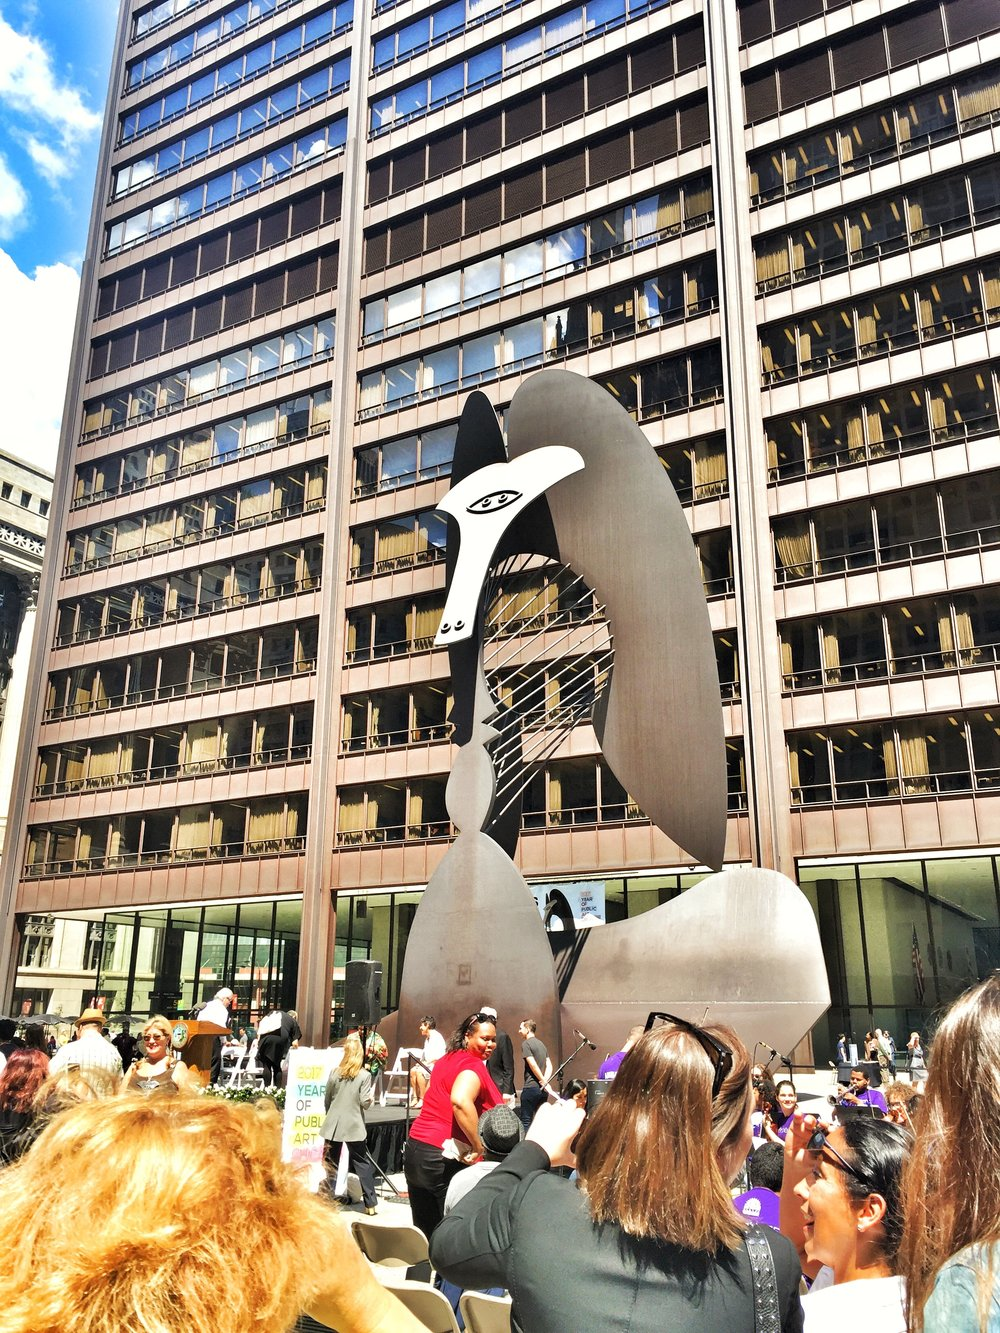 This Picasso sculpture is particularly popular!